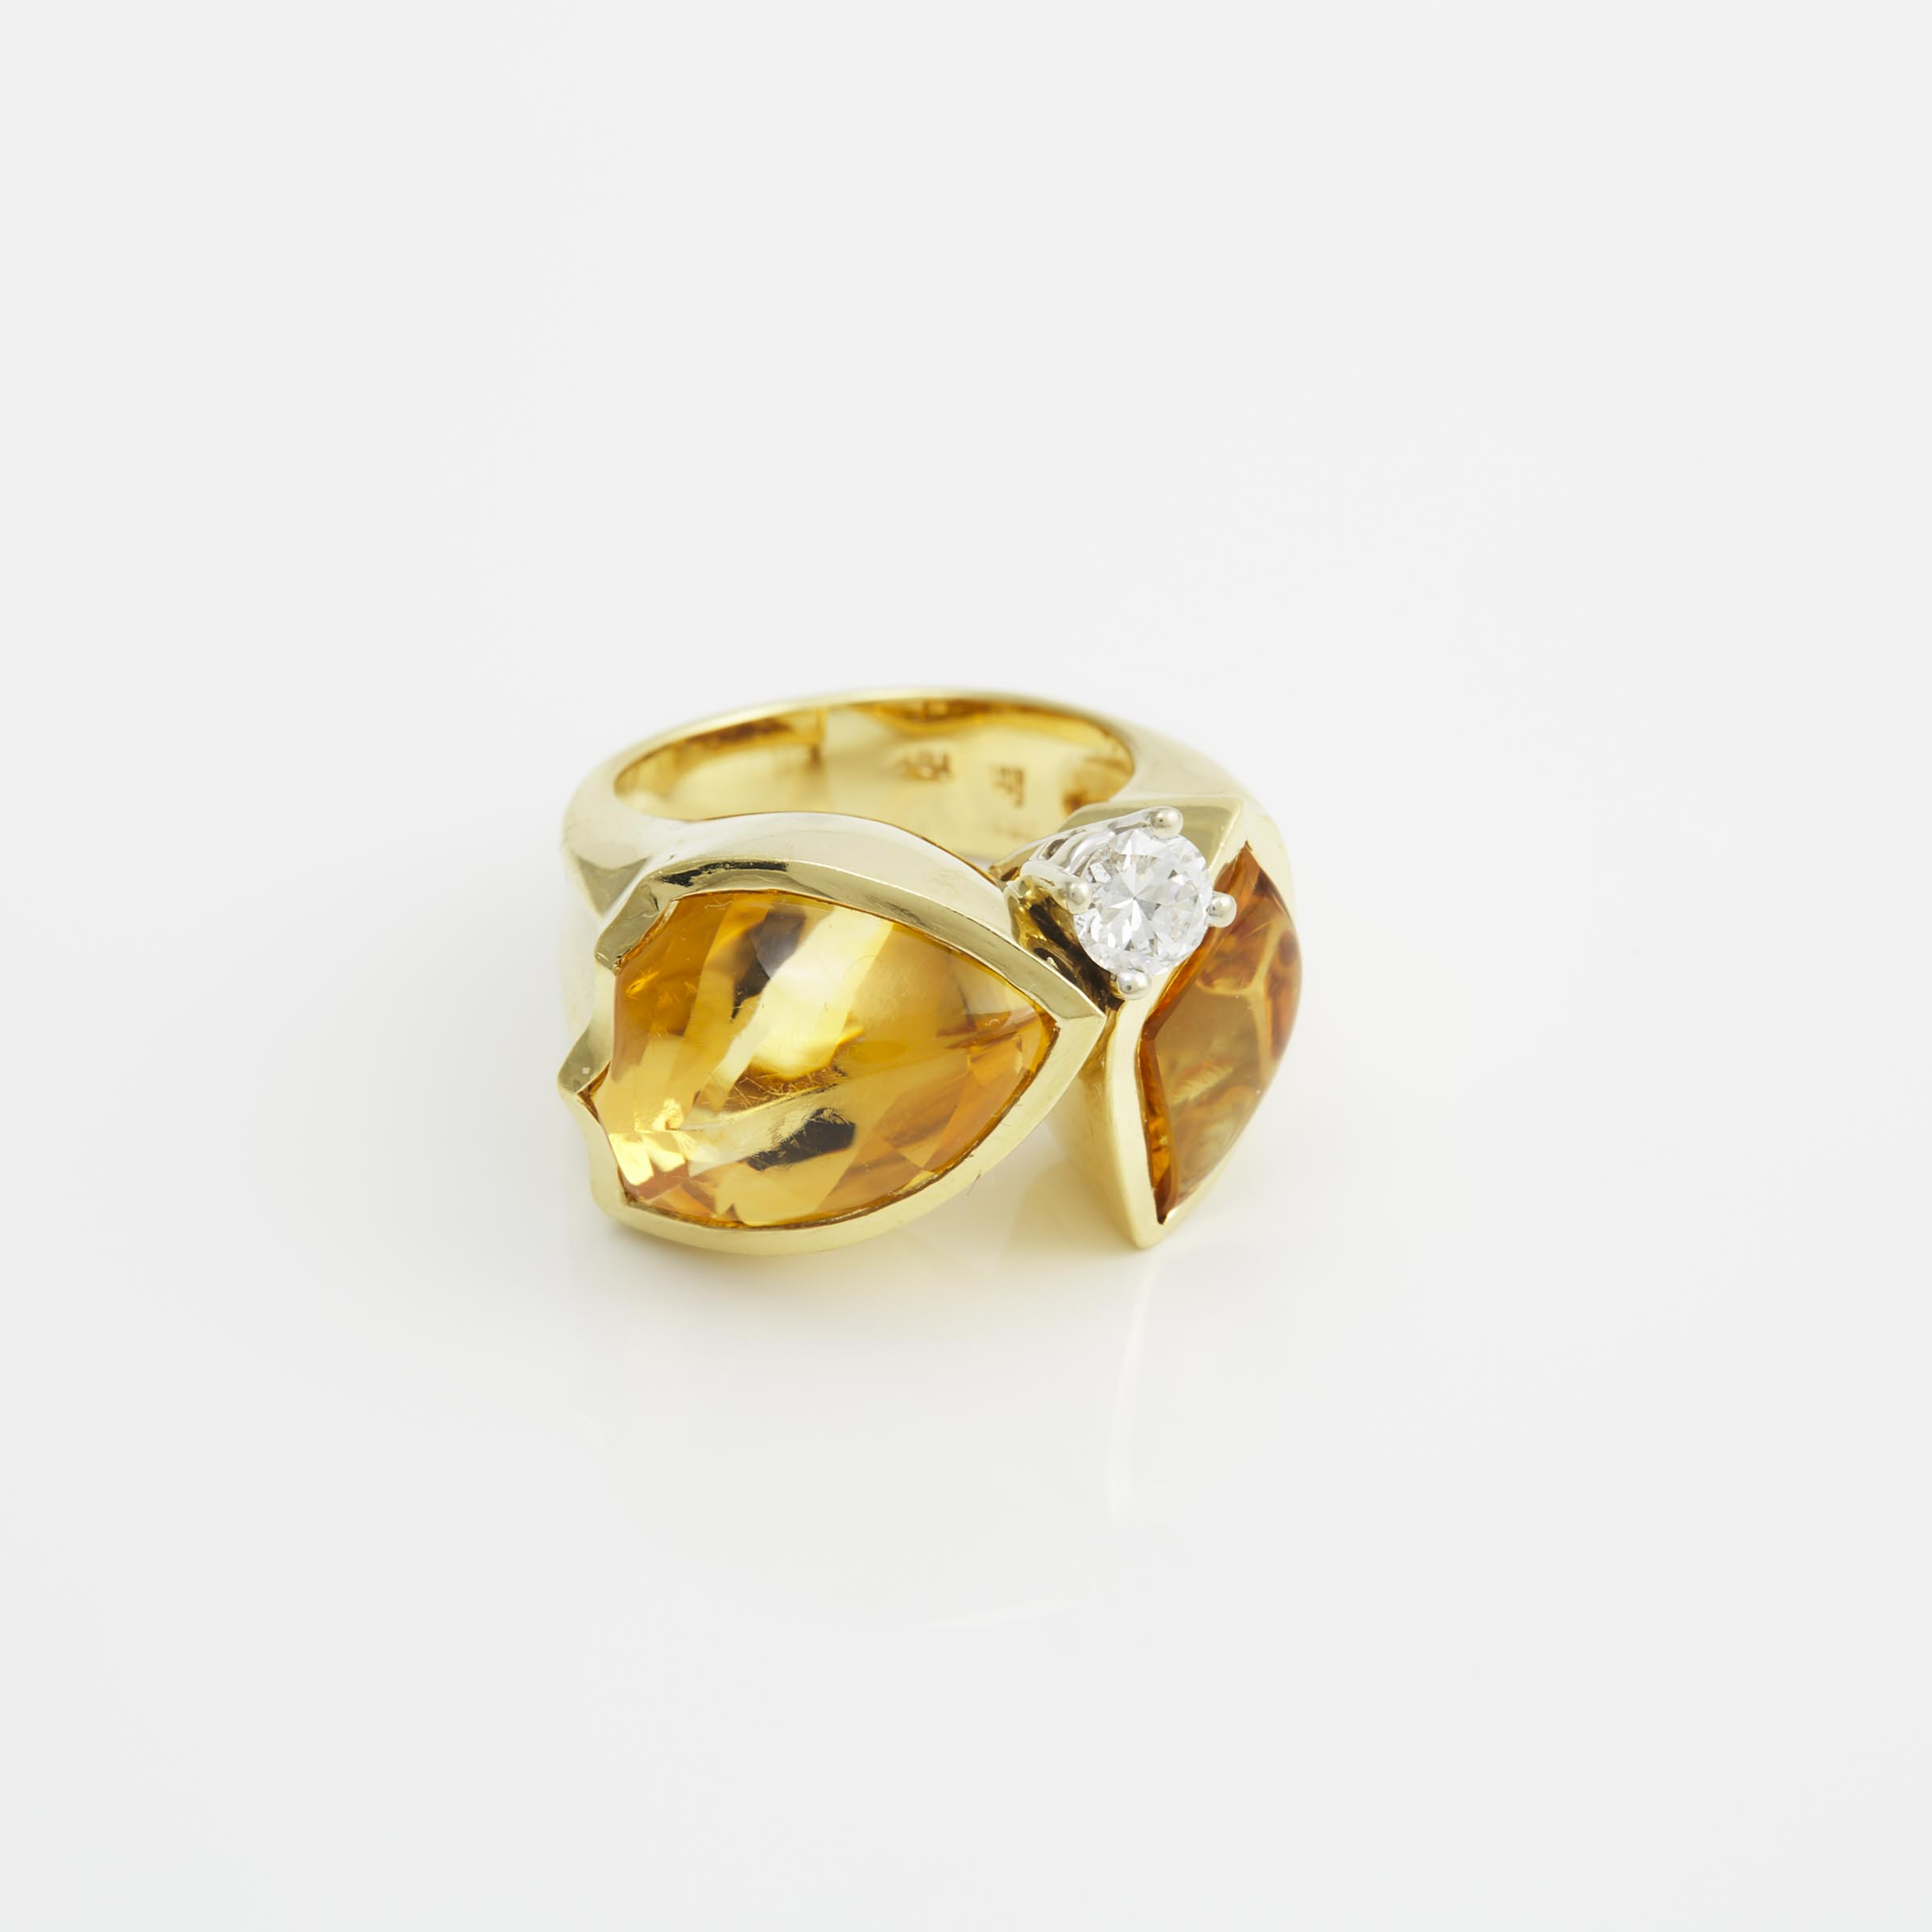 18k Yellow Gold Cocktail Ring